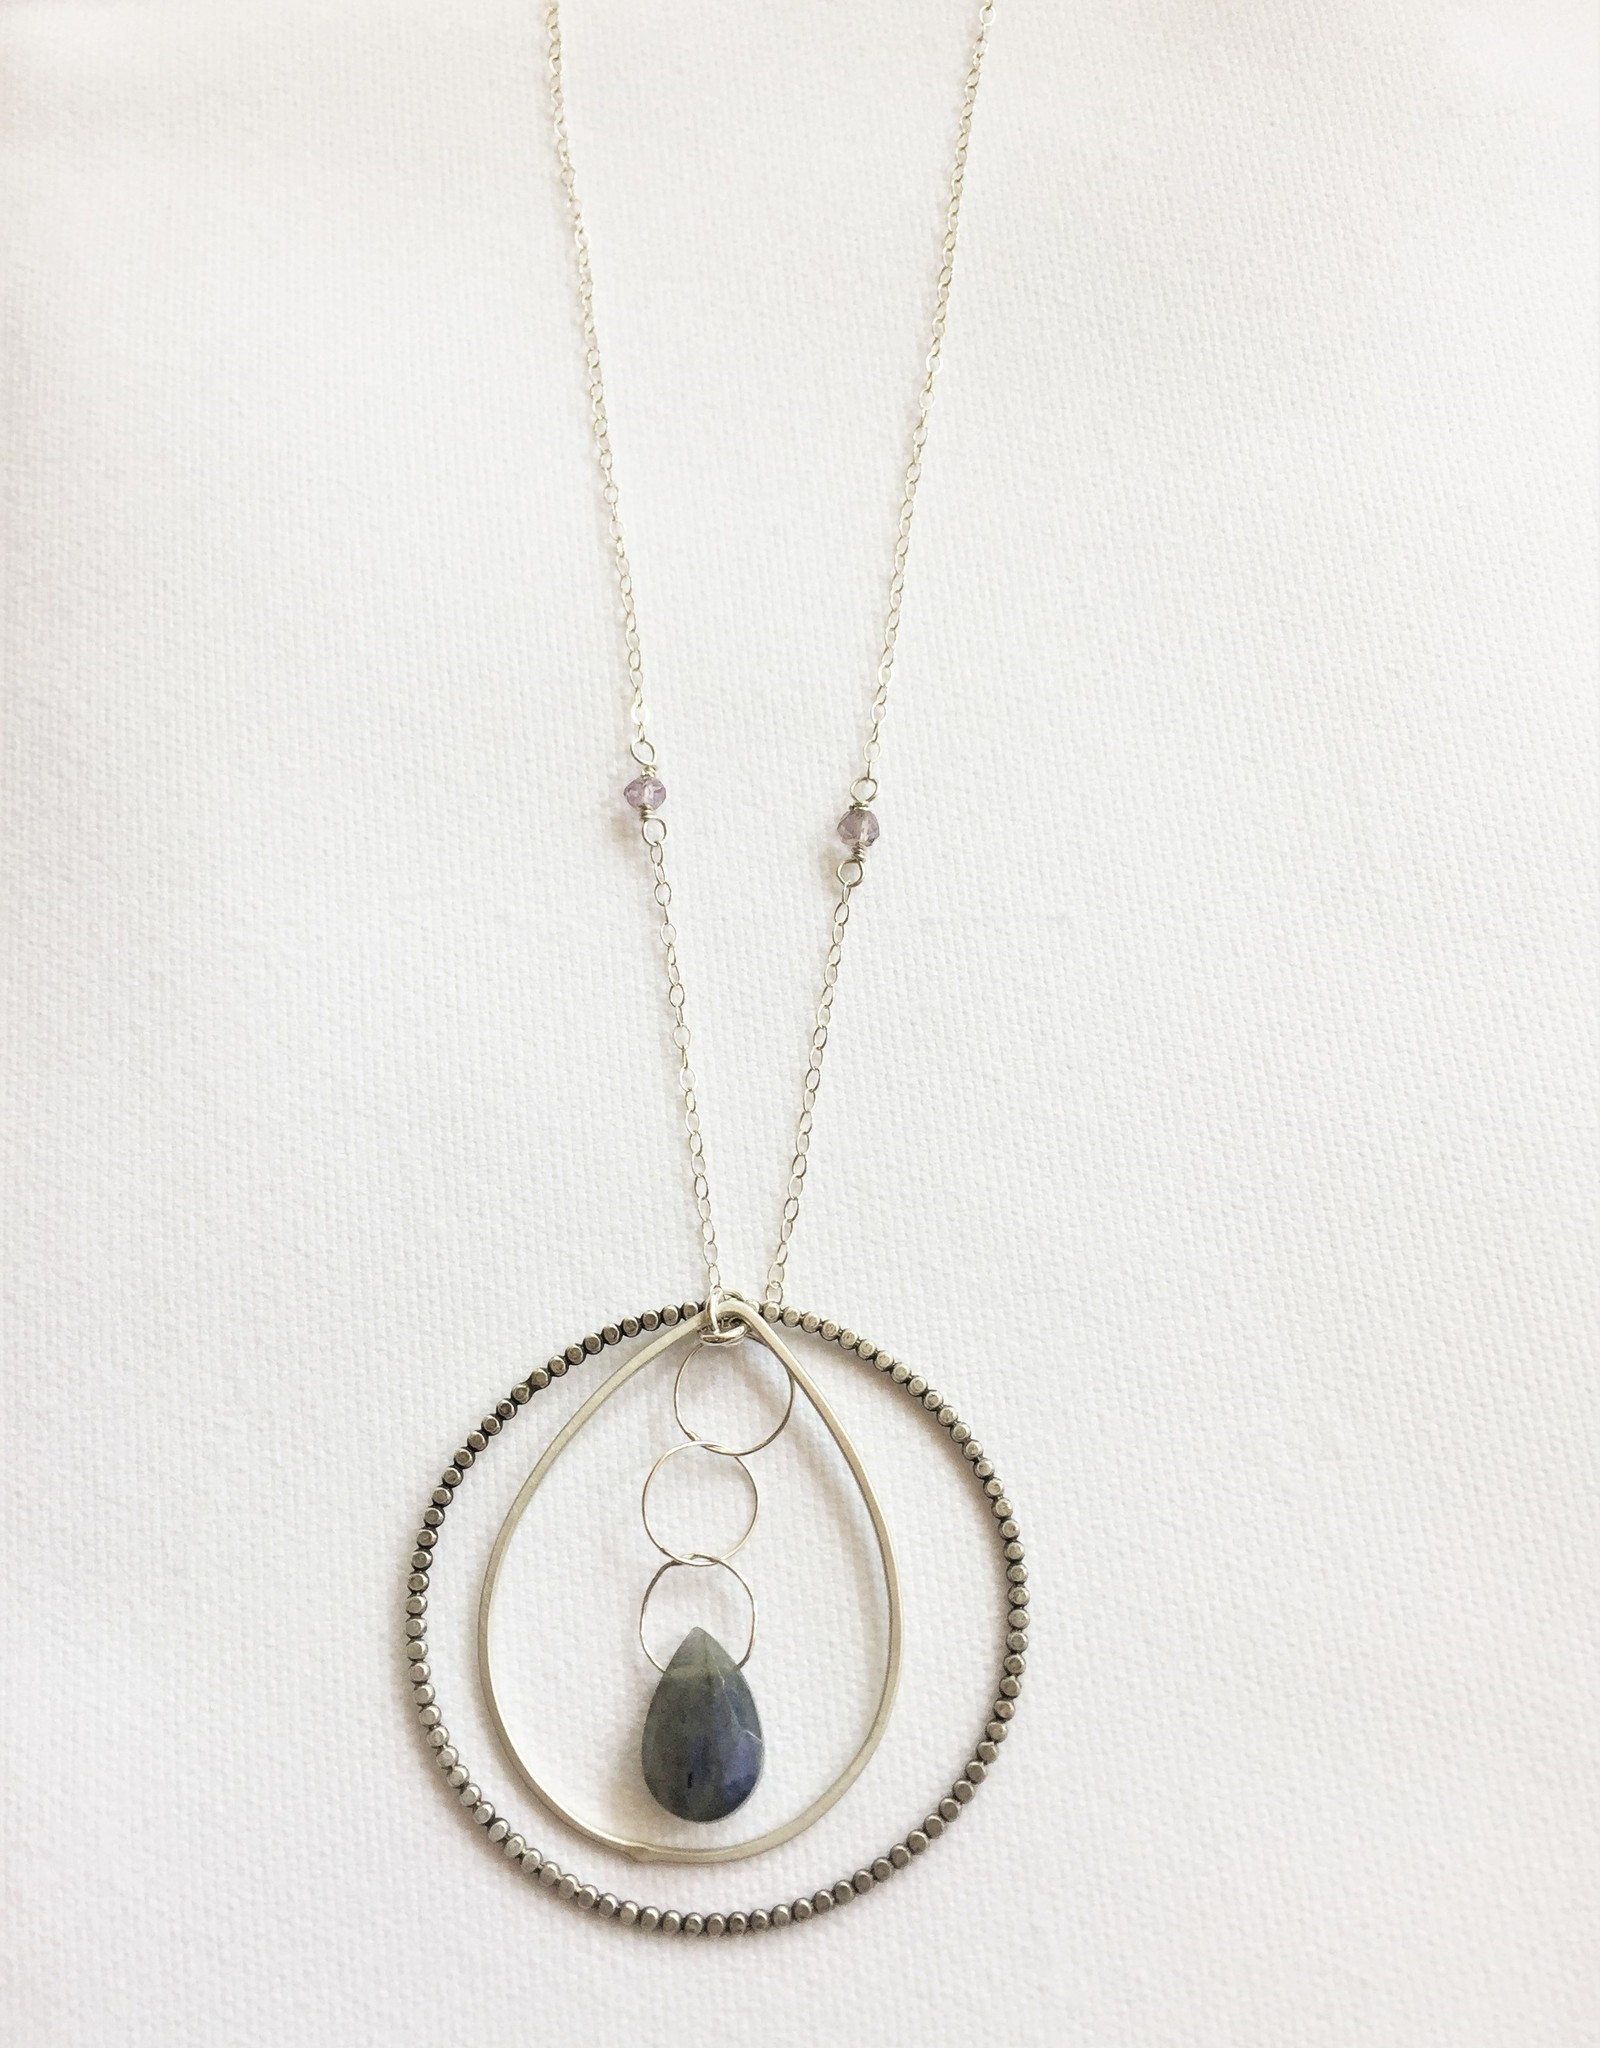 Laura J Designs Sterling Silver Necklace with Laboradite Teardrop